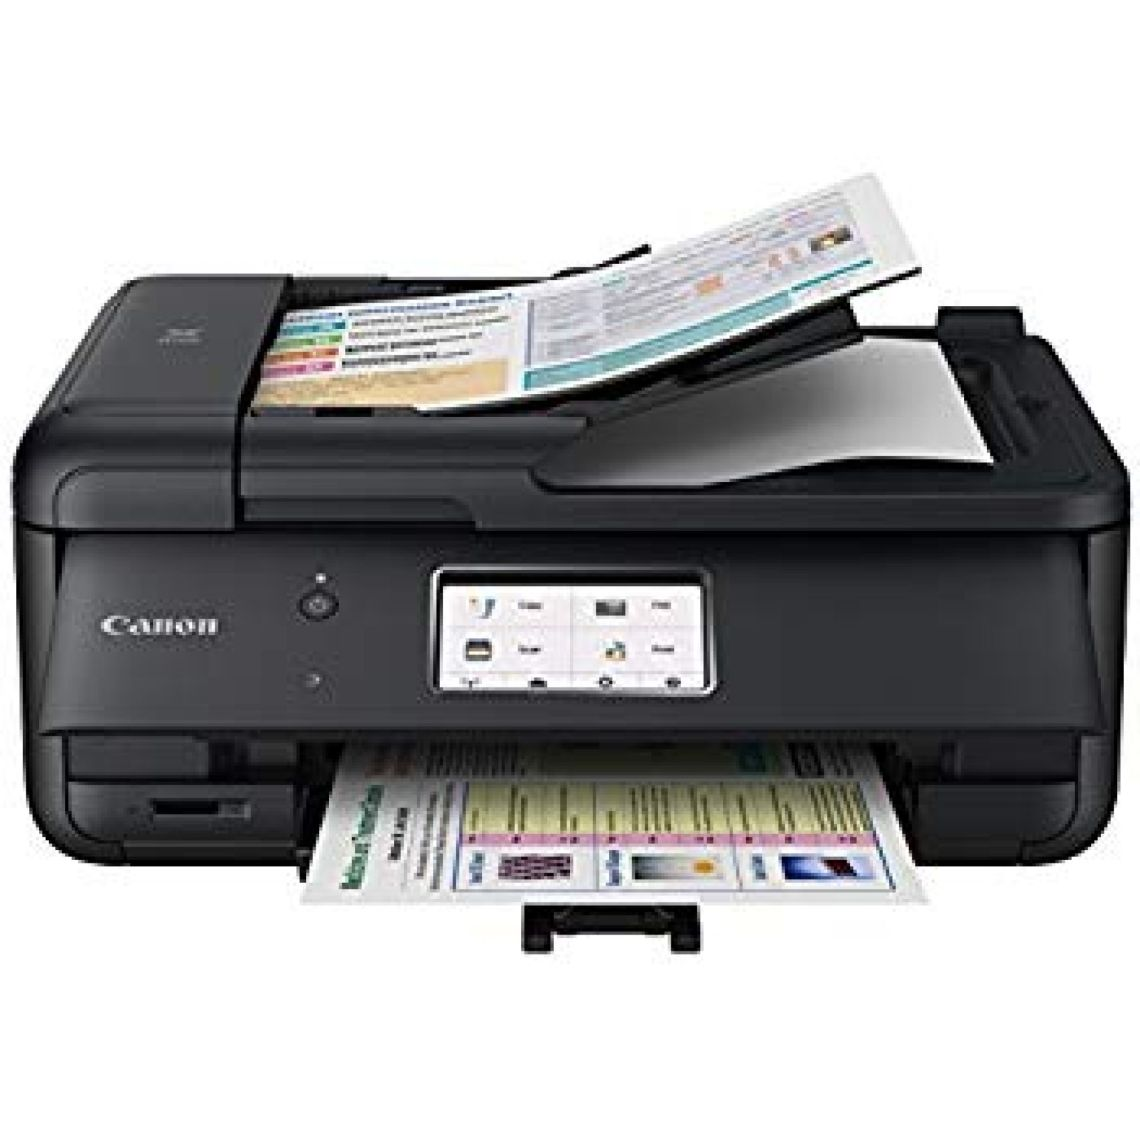 Amazon.com: Canon PIXMA TR8520 Wireless All in One Printer | Mobile Printing | Photo and Document Printing, AirPrint(R) and Google Cloud Printing, Black: Electronics